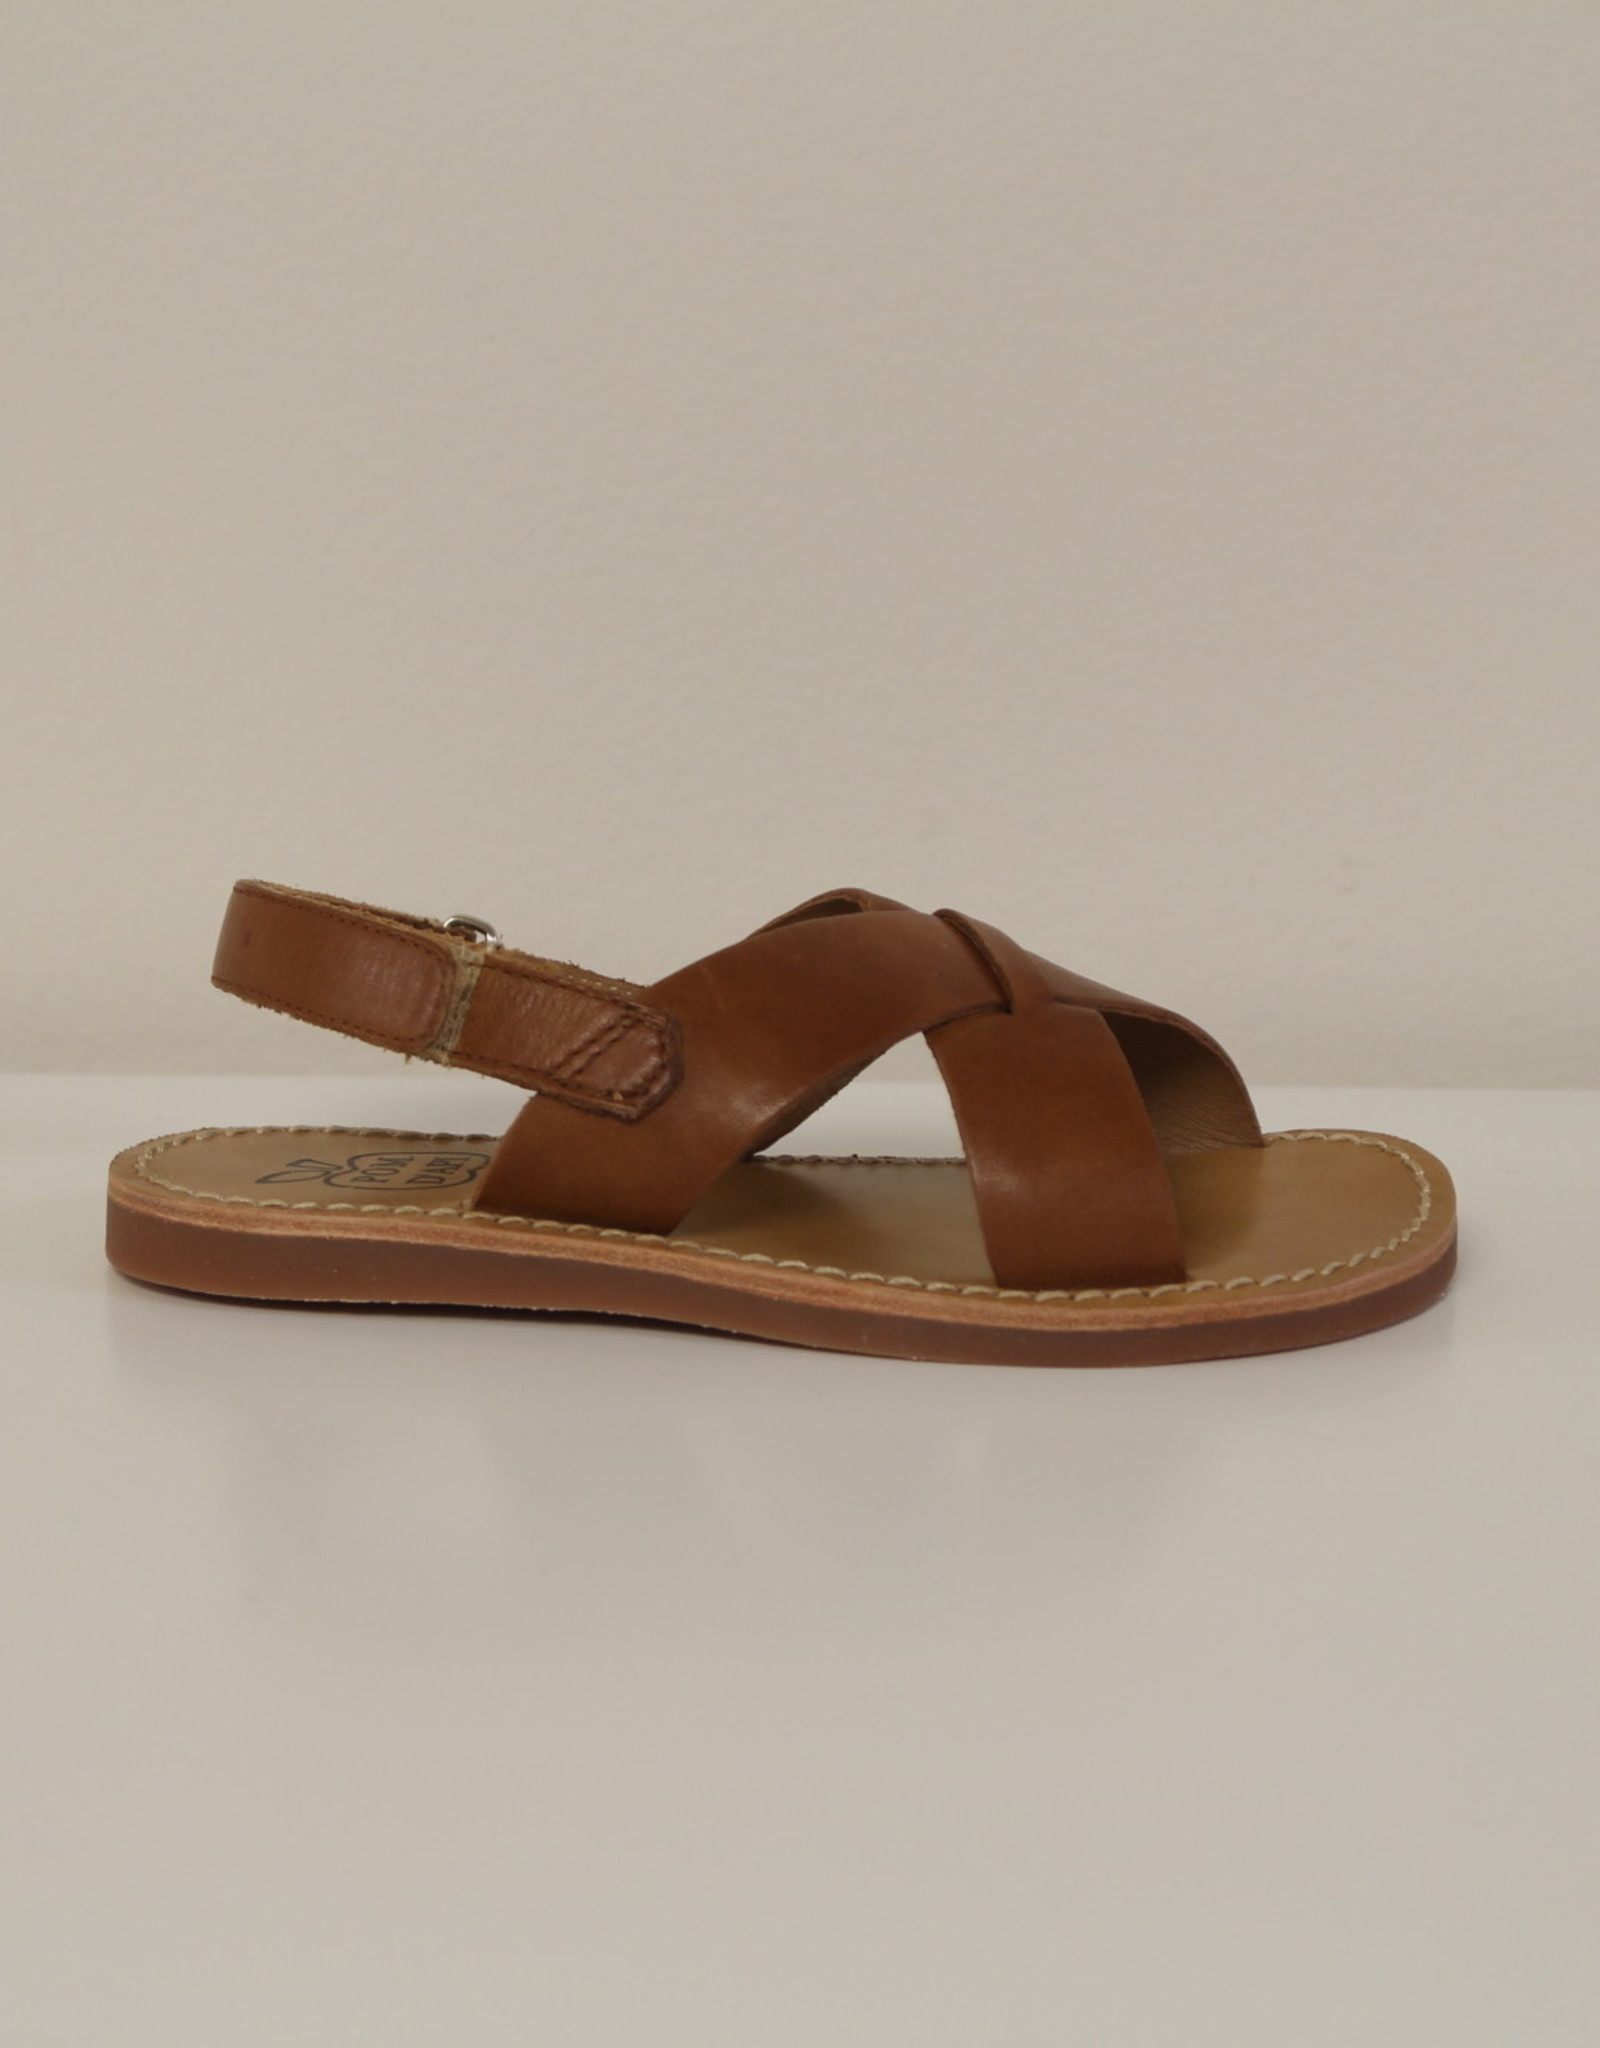 Pom d'api plage stitch sandaal cross oxford camel